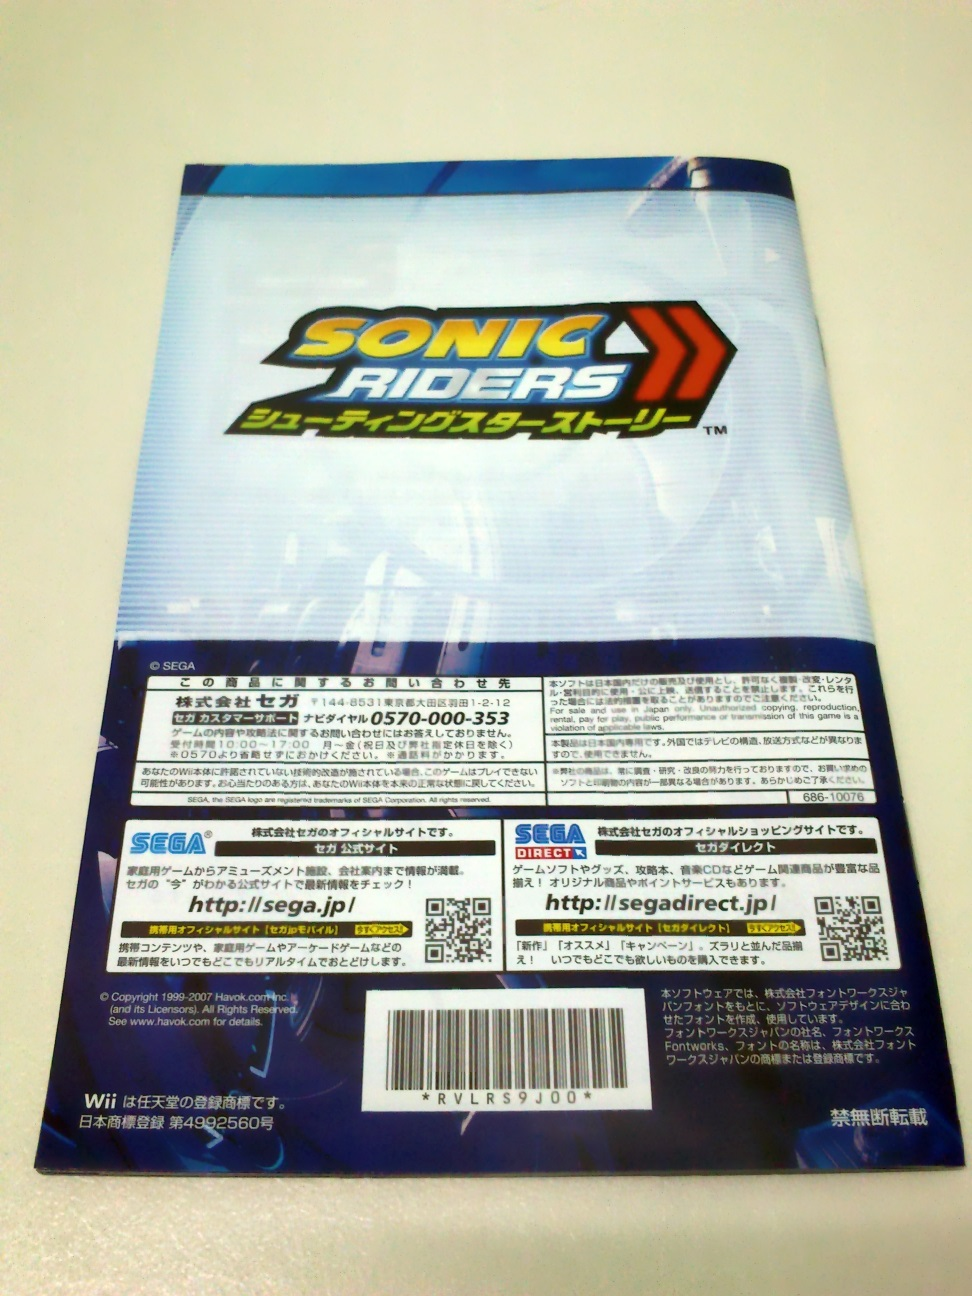 Sonic Riders Zero Gravity Wii Japan Version Sonic Collectibles Sonic Notes